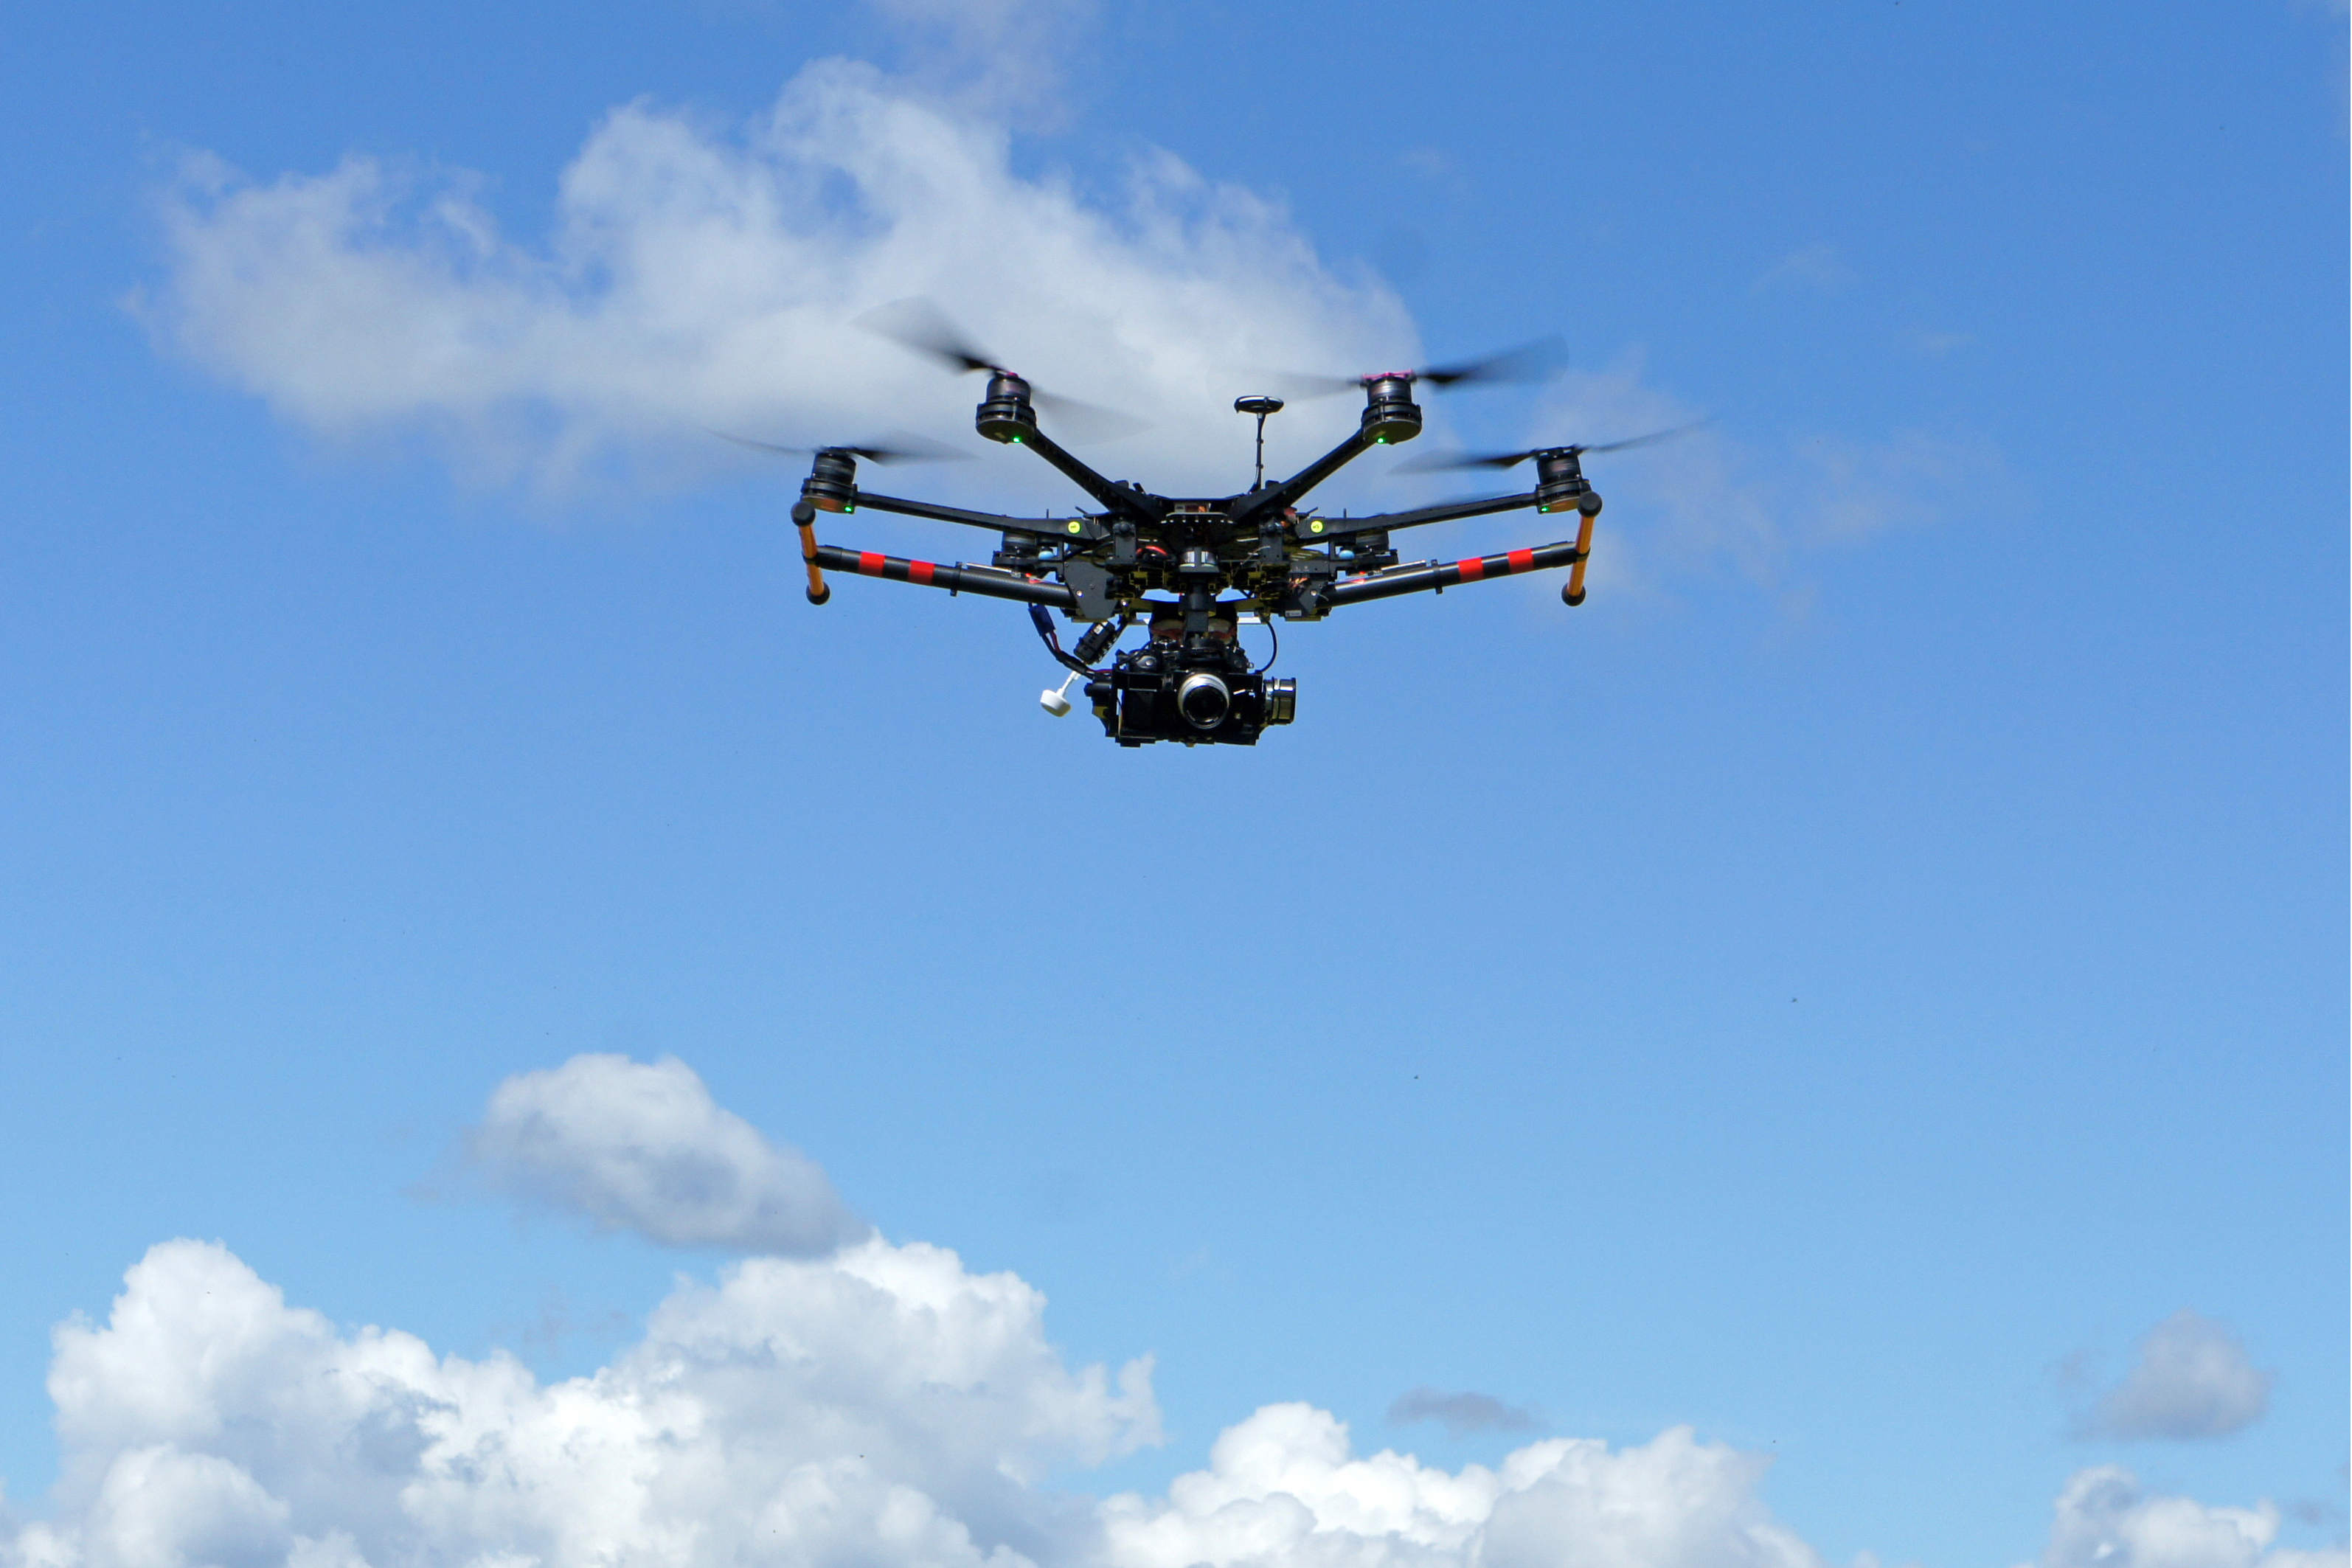 Flying drone with stabilised camera